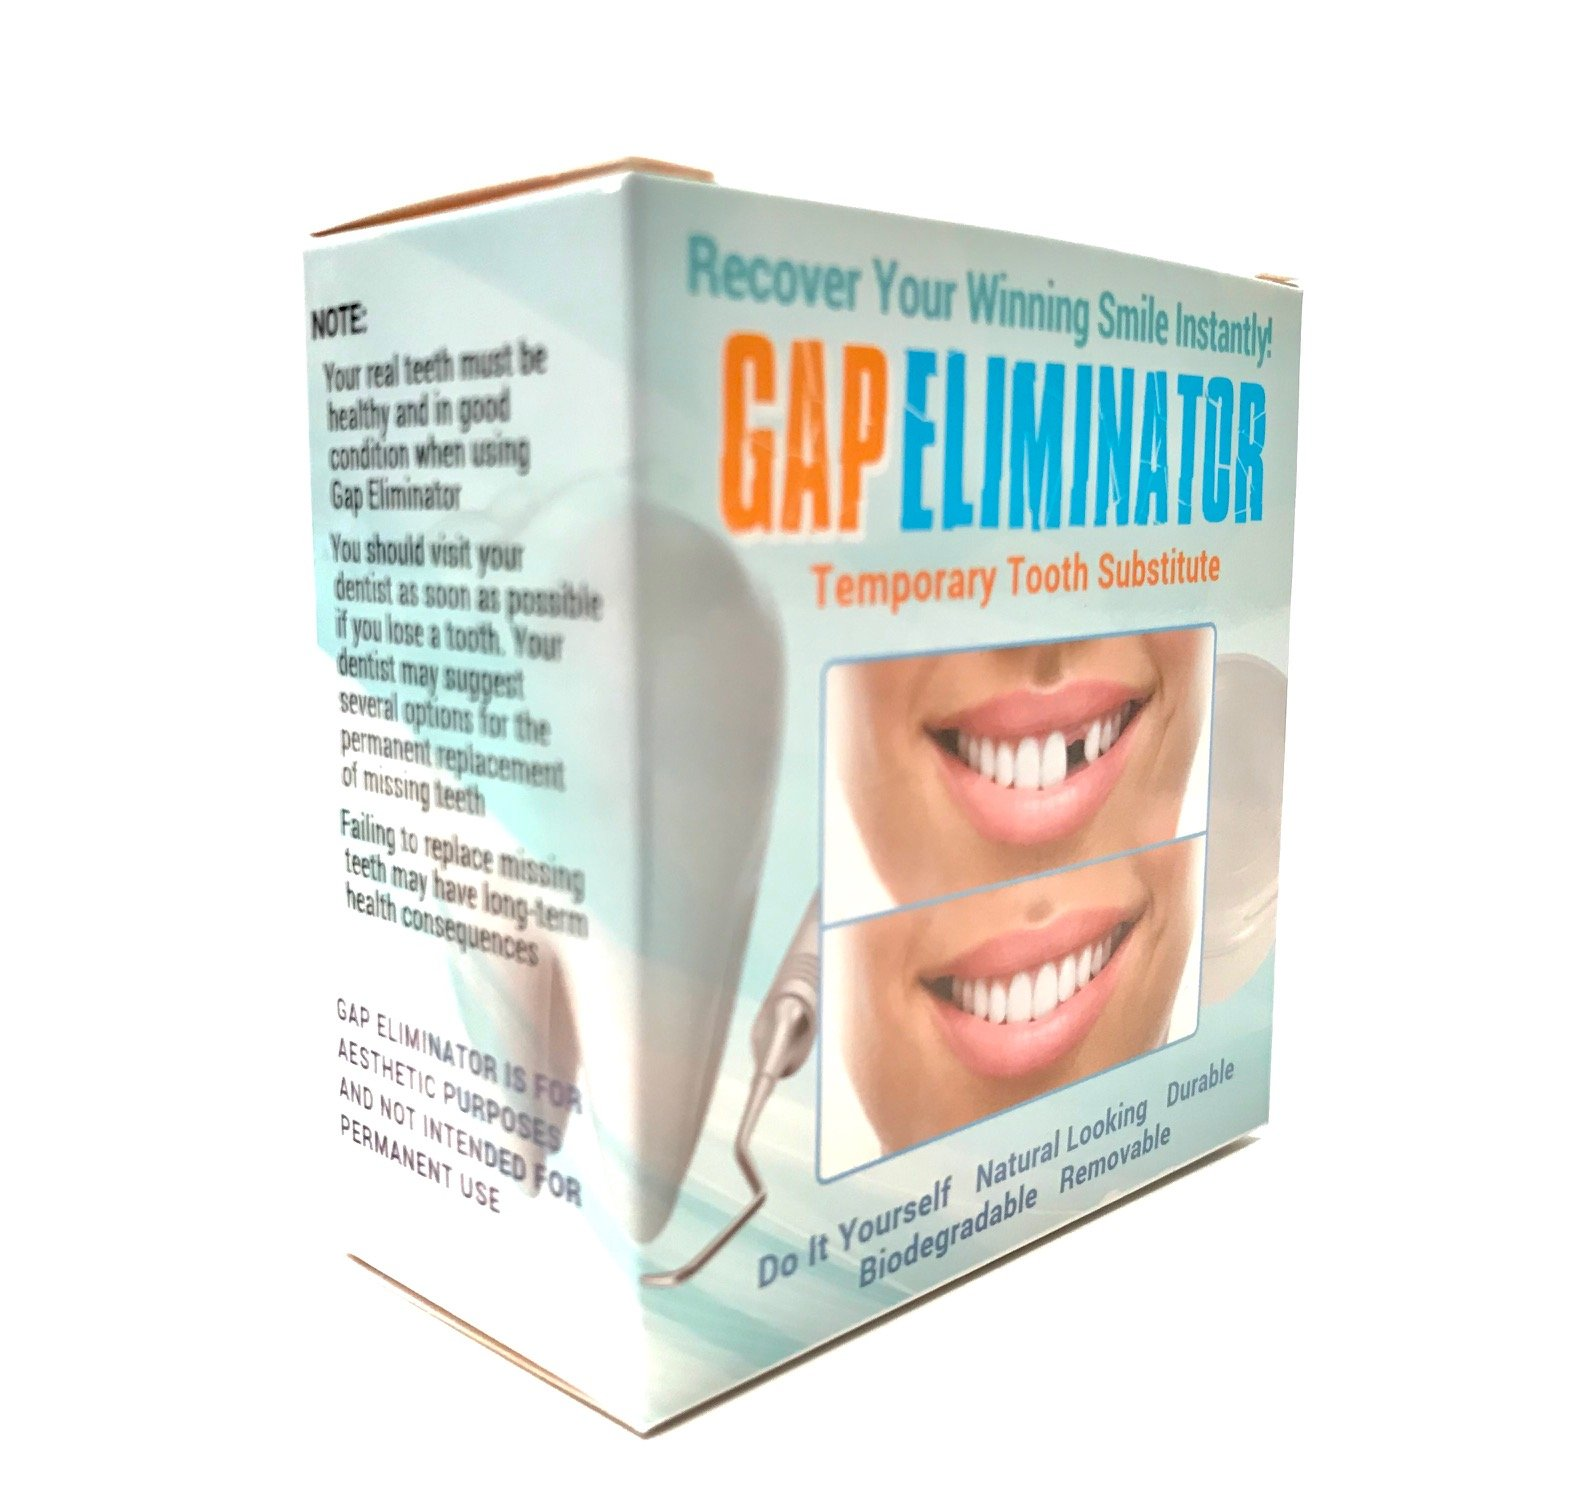 Do It Yourself Gap Eliminator Temporary Tooth Substitute With Sculpting Tool by Gap Eliminator